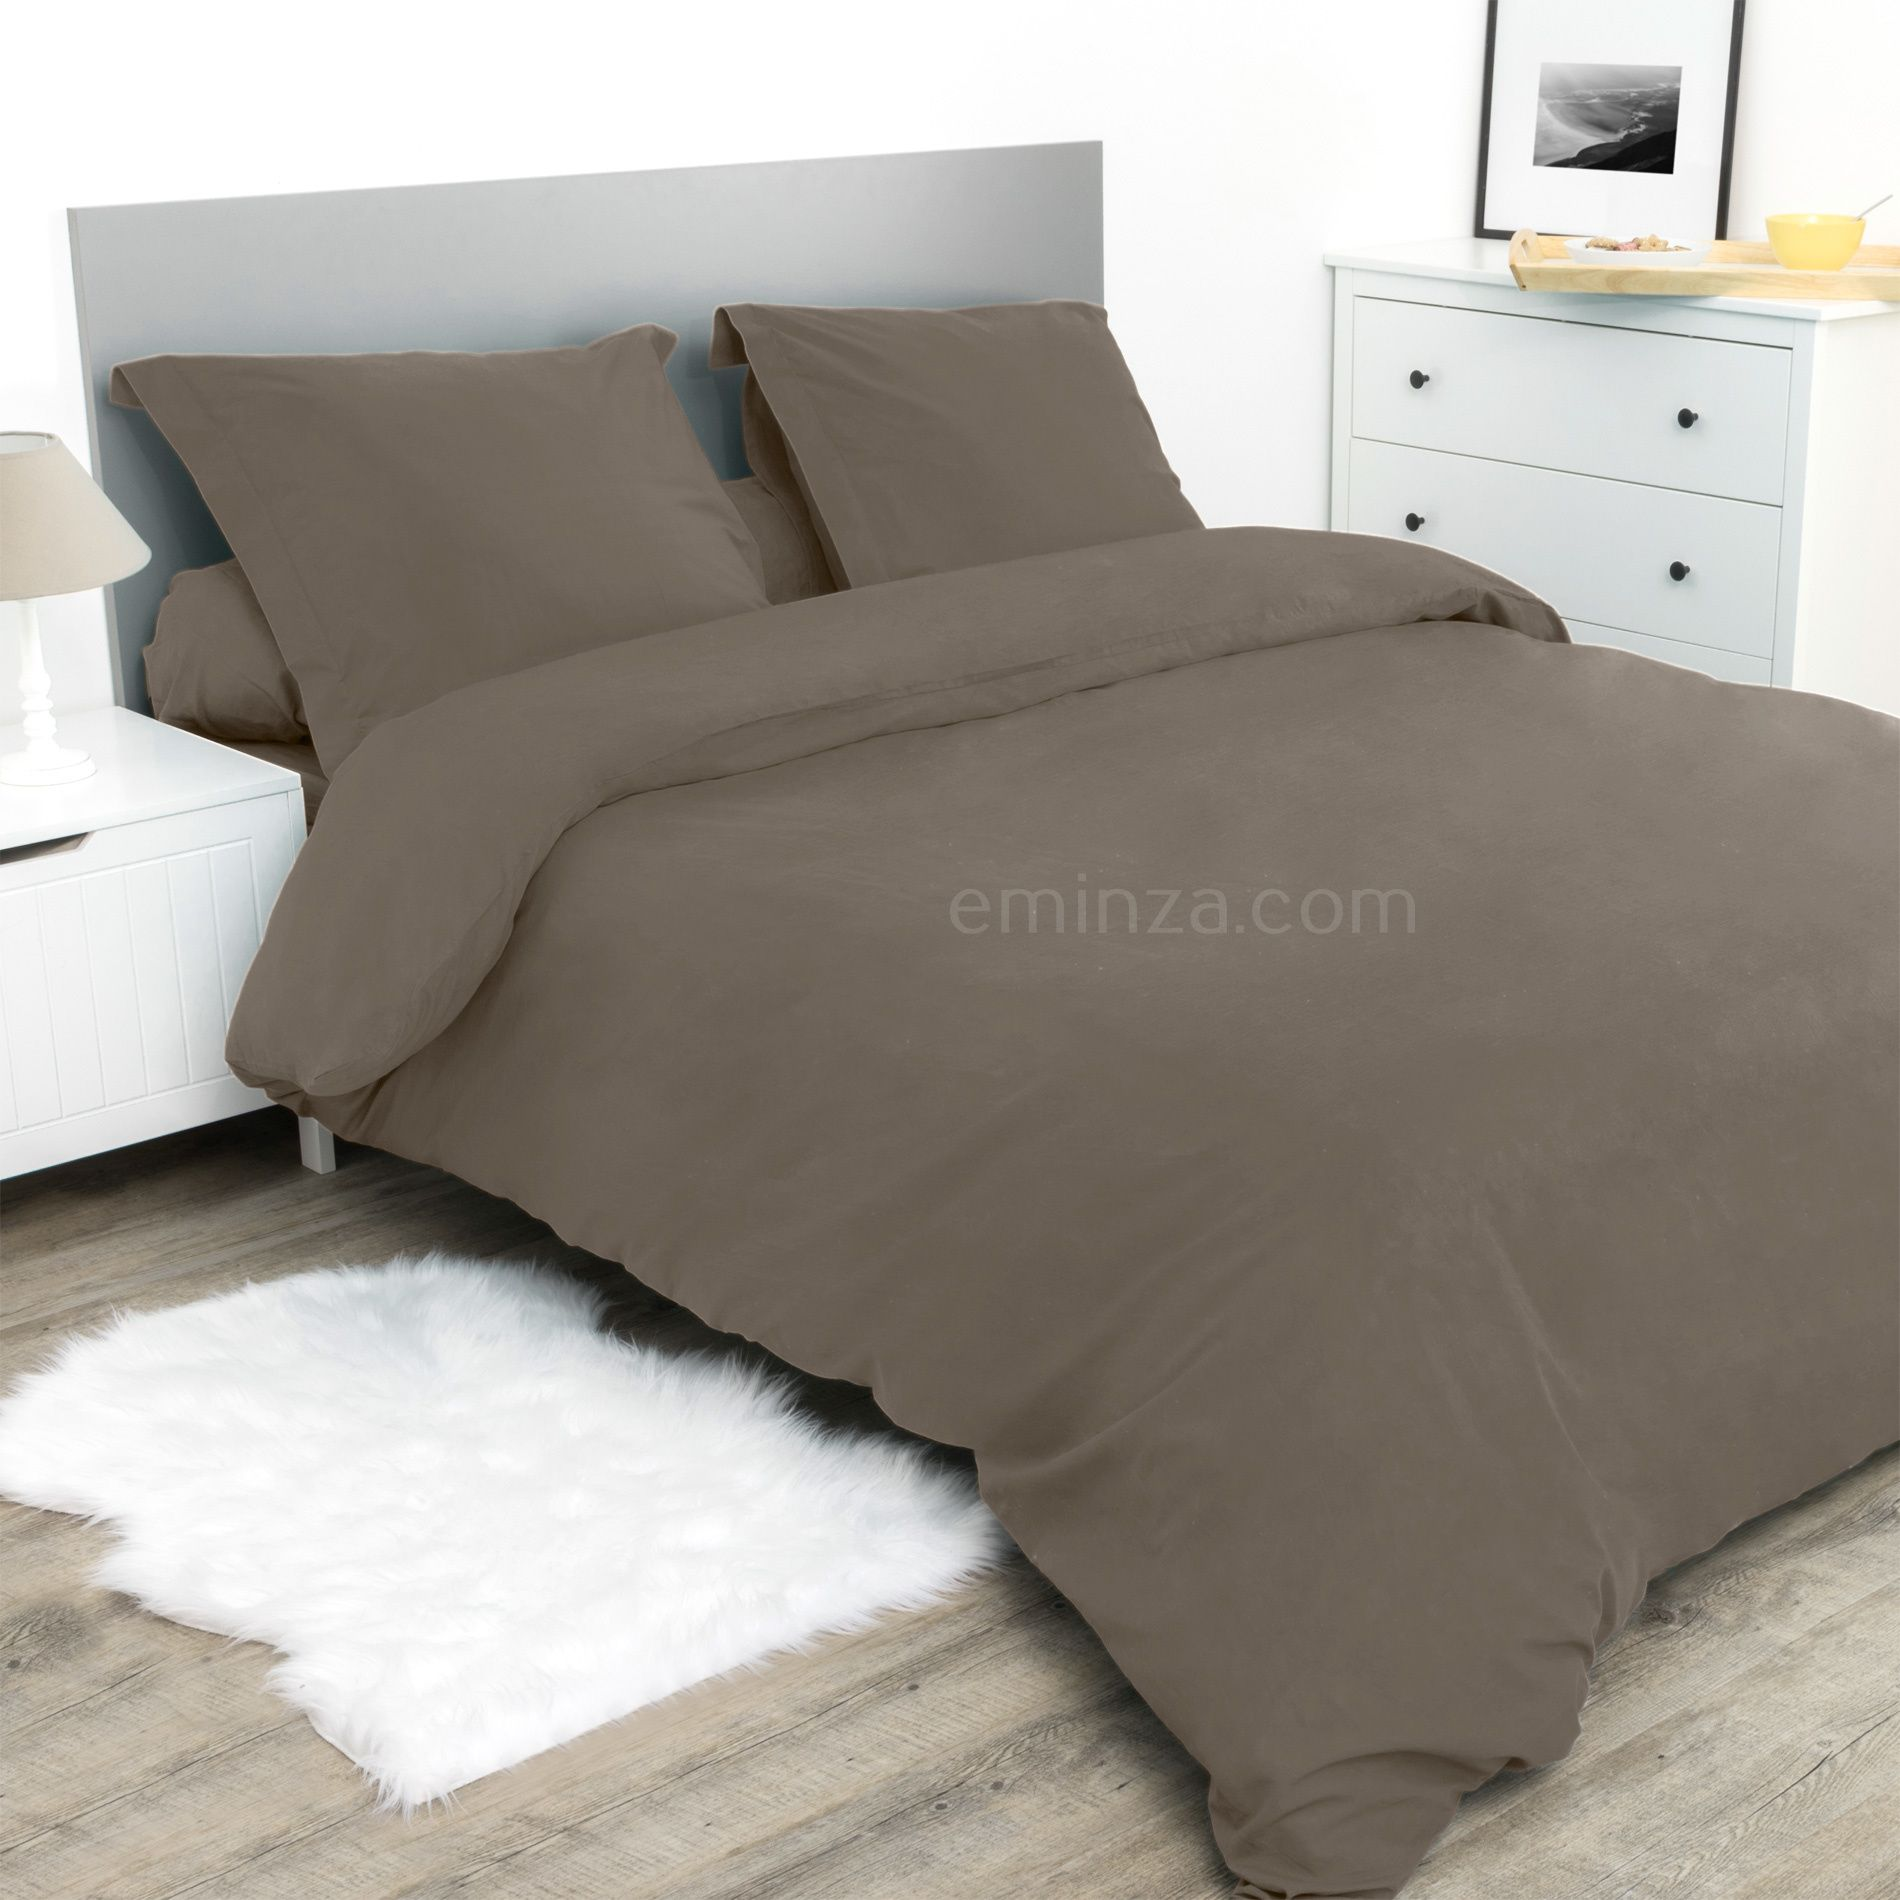 drap housse 180 cm confort taupe drap housse eminza. Black Bedroom Furniture Sets. Home Design Ideas